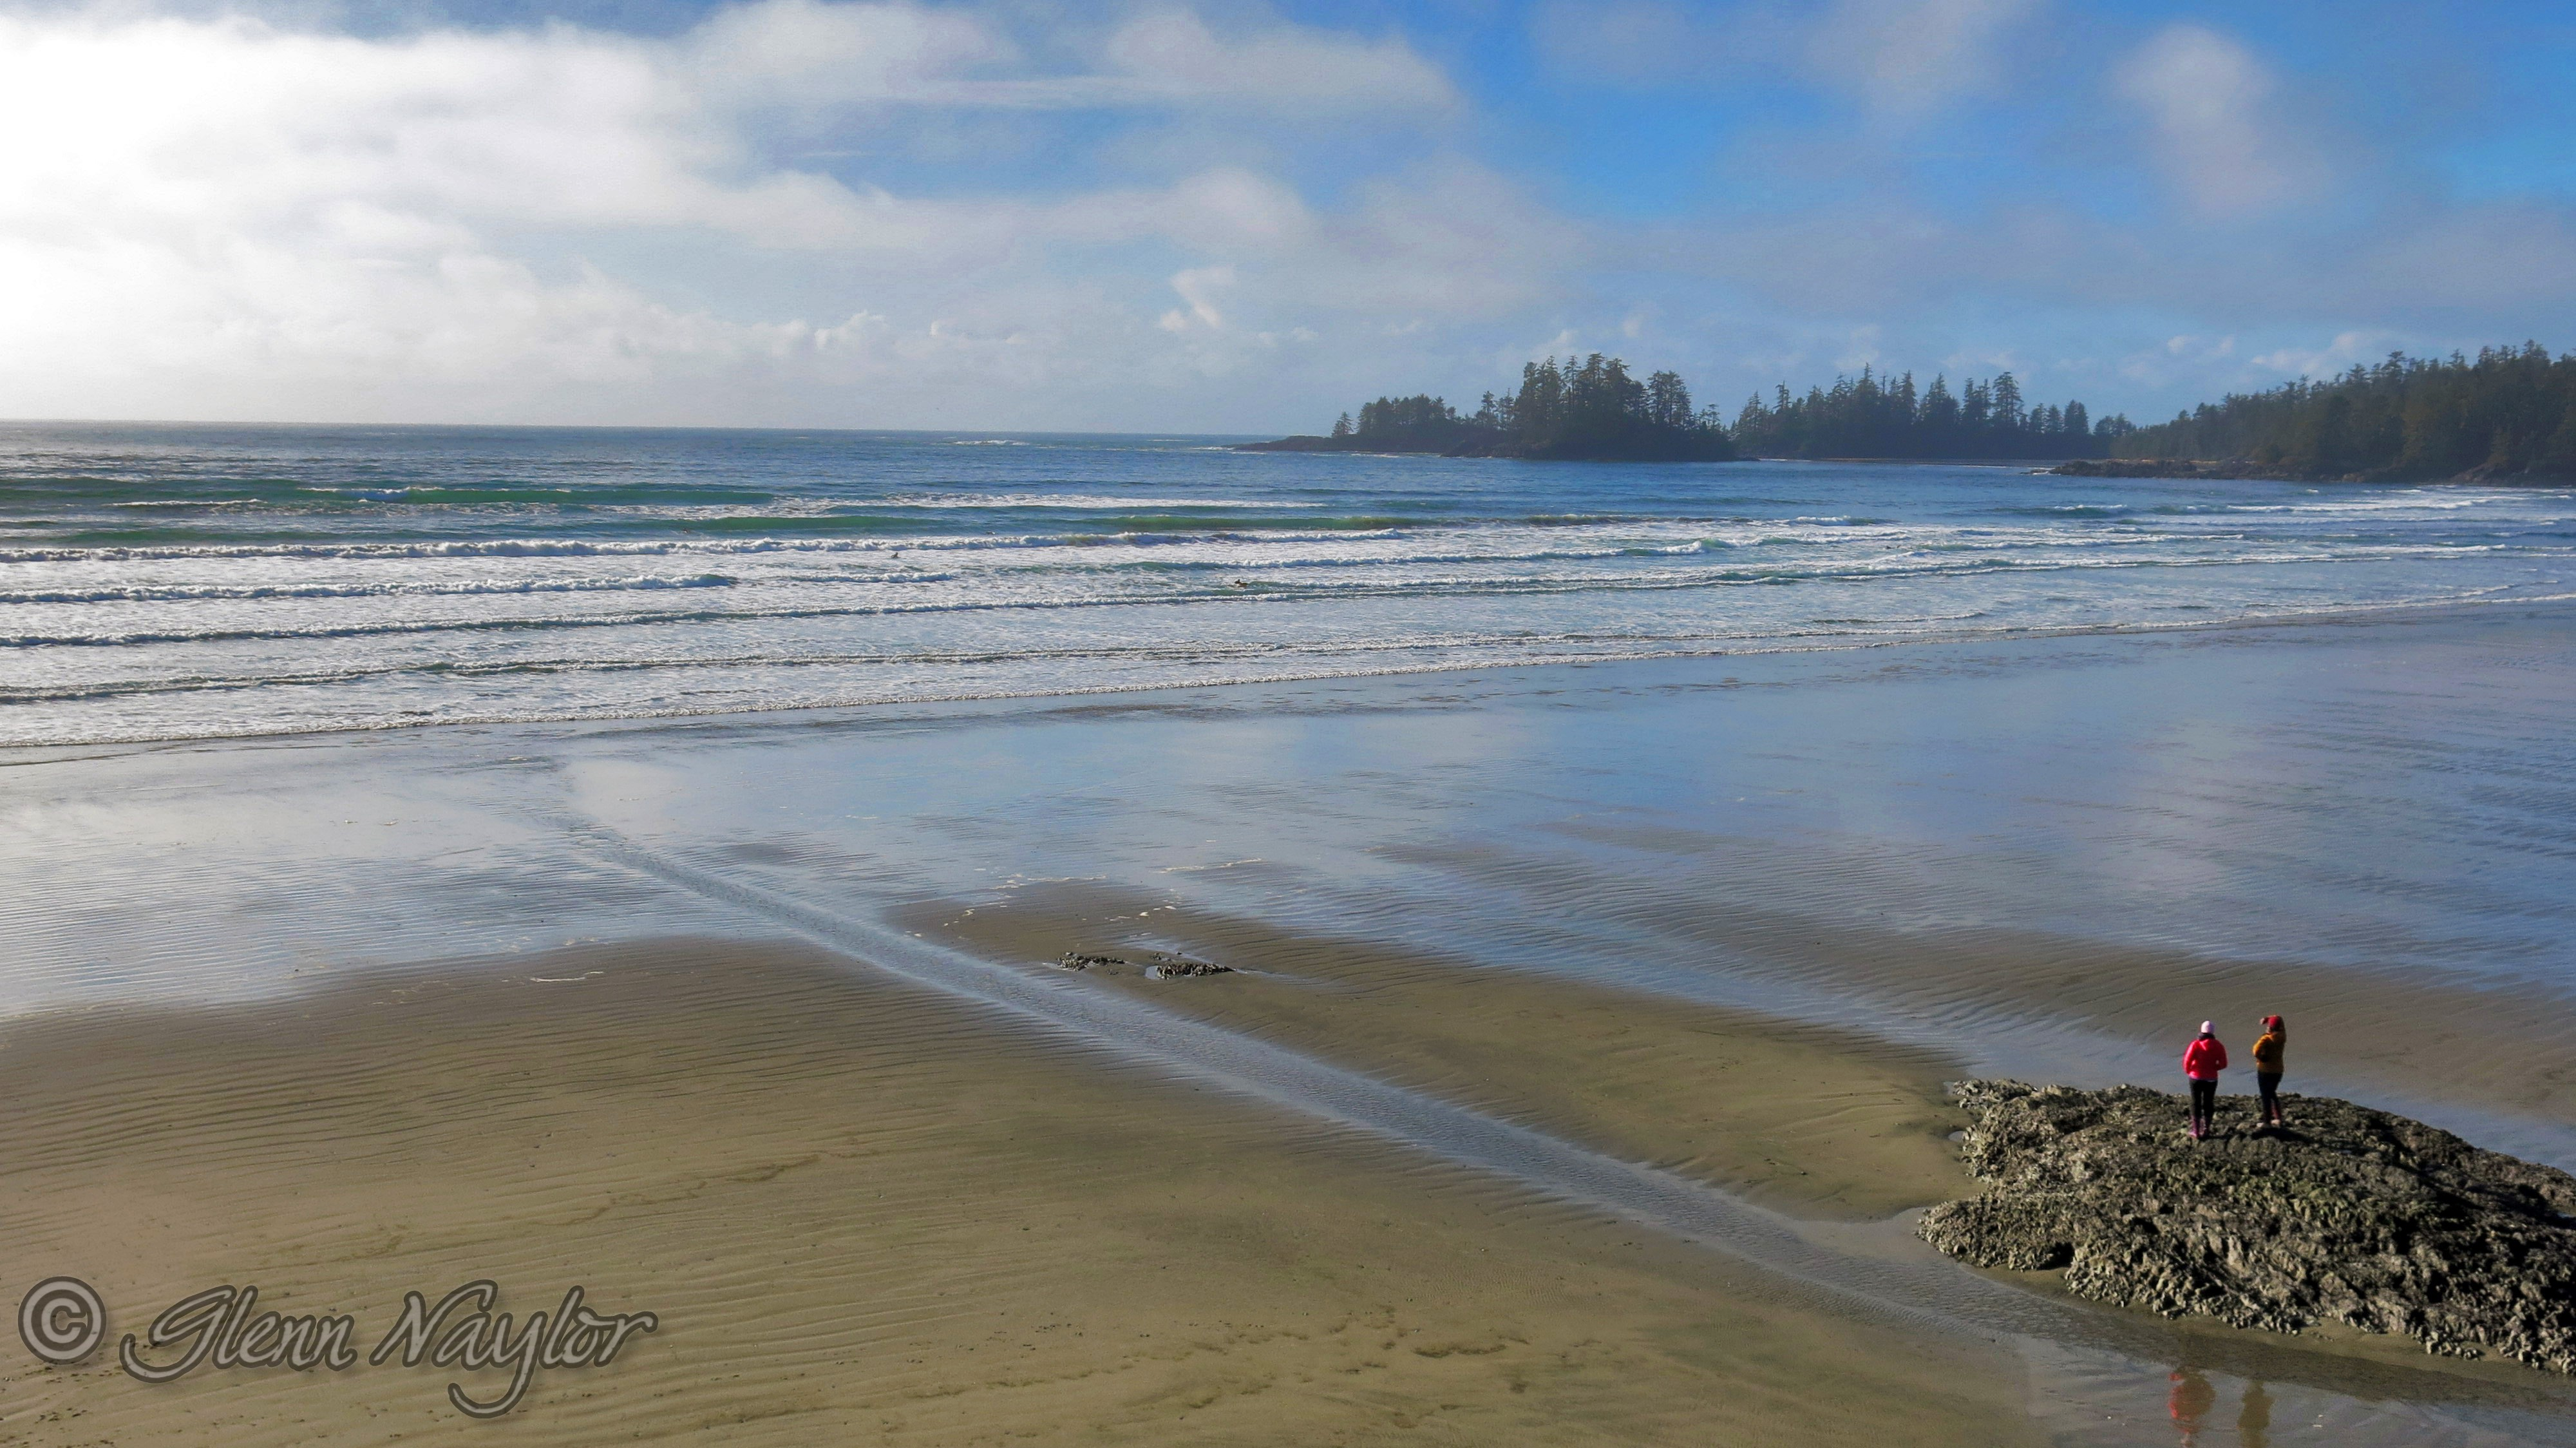 Looking out to sea, Tofino BC